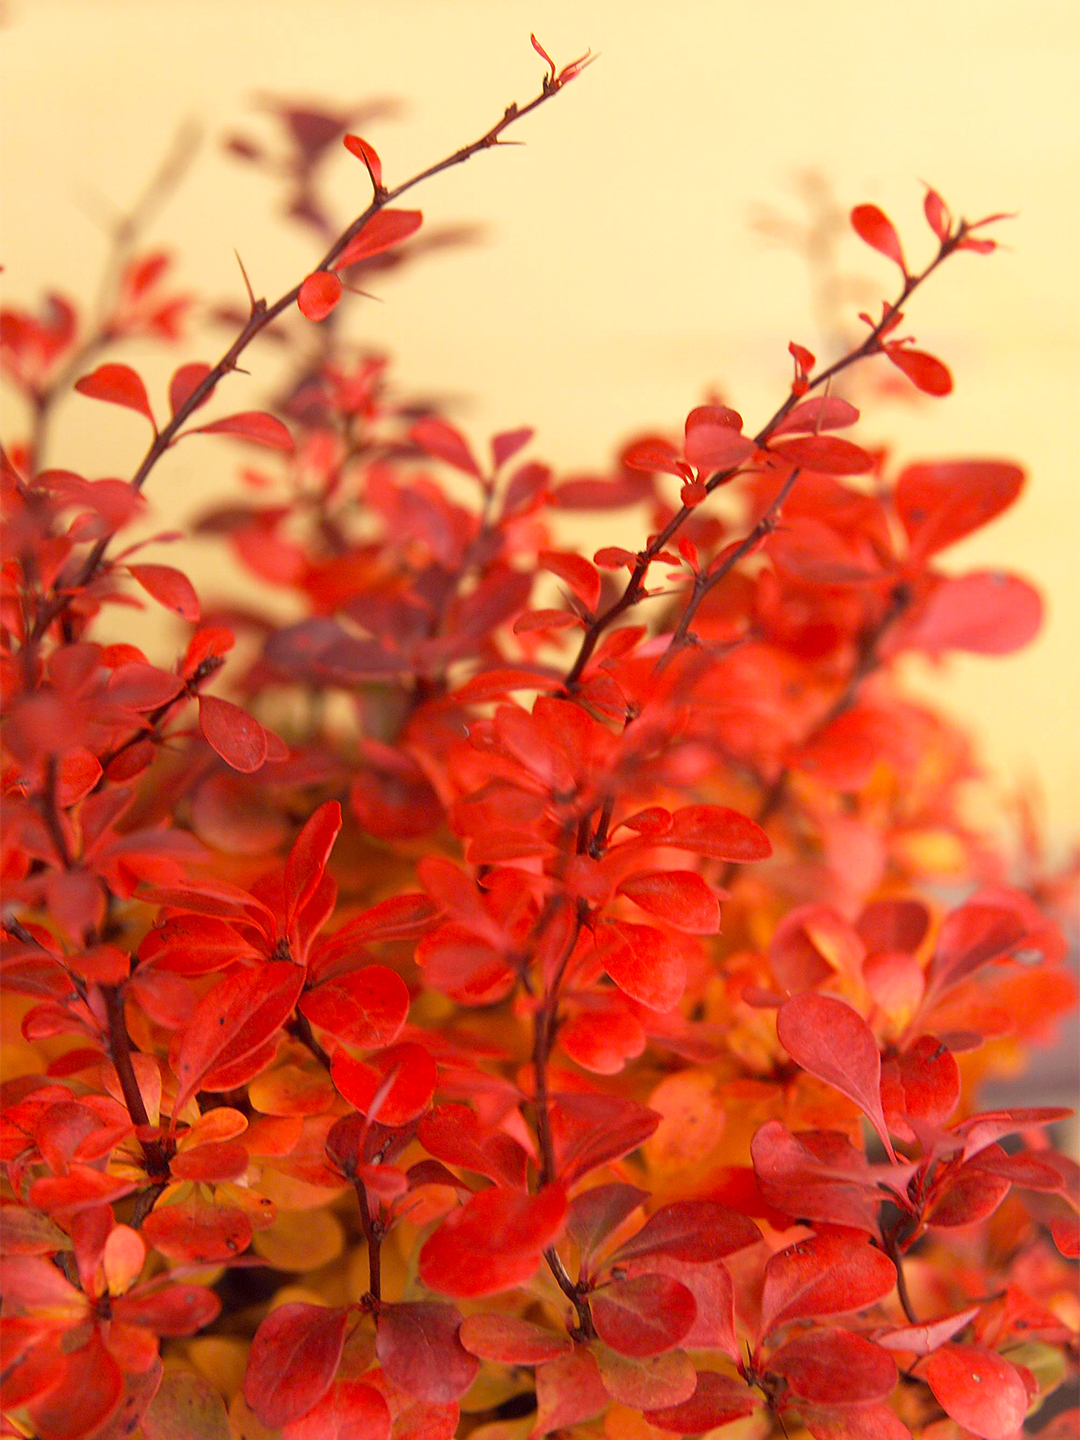 Japanese barberry plant with thorns